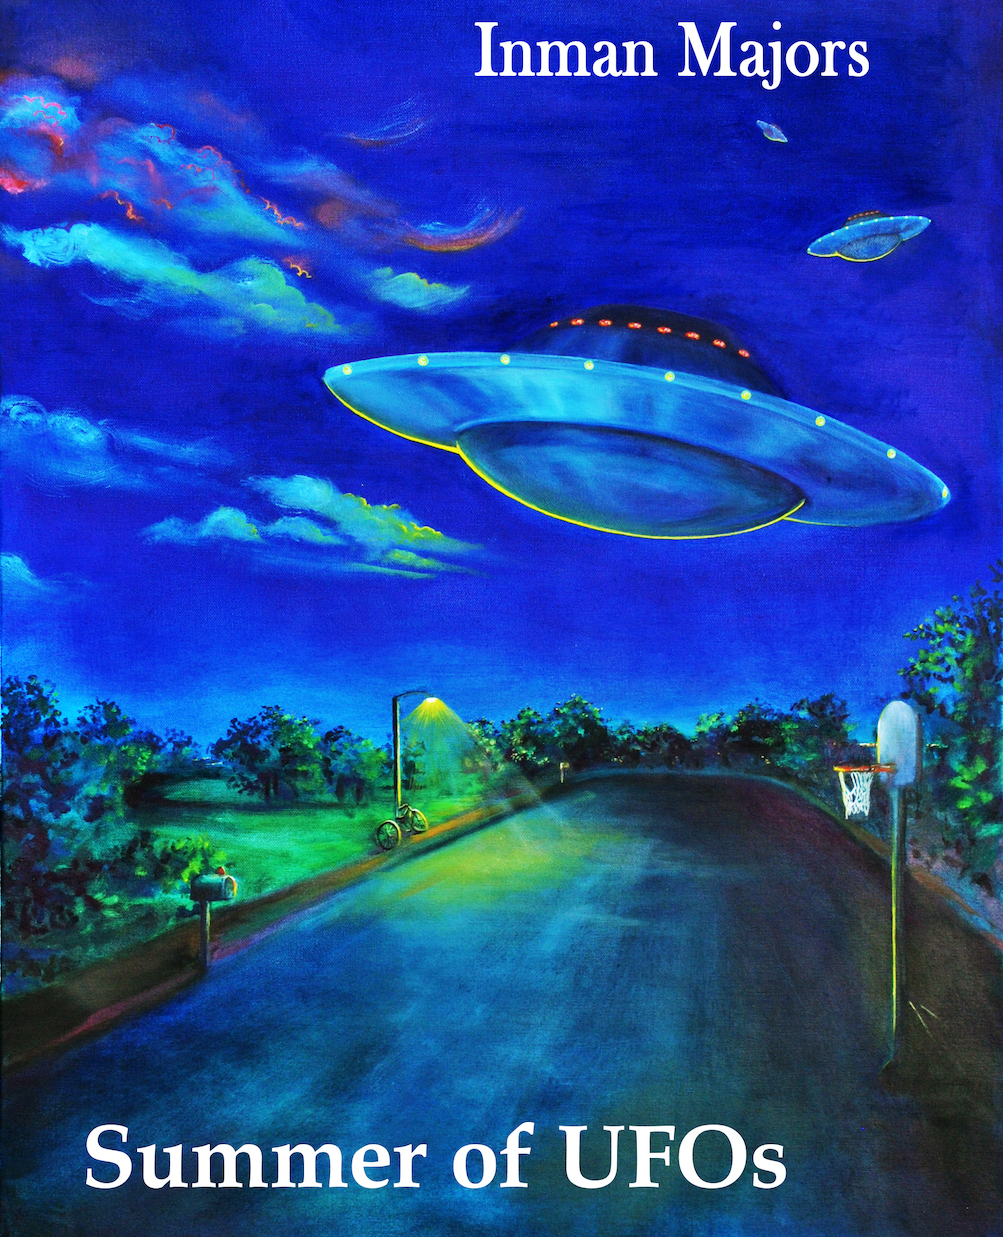 A UFO hovering over an abandoned highway at night